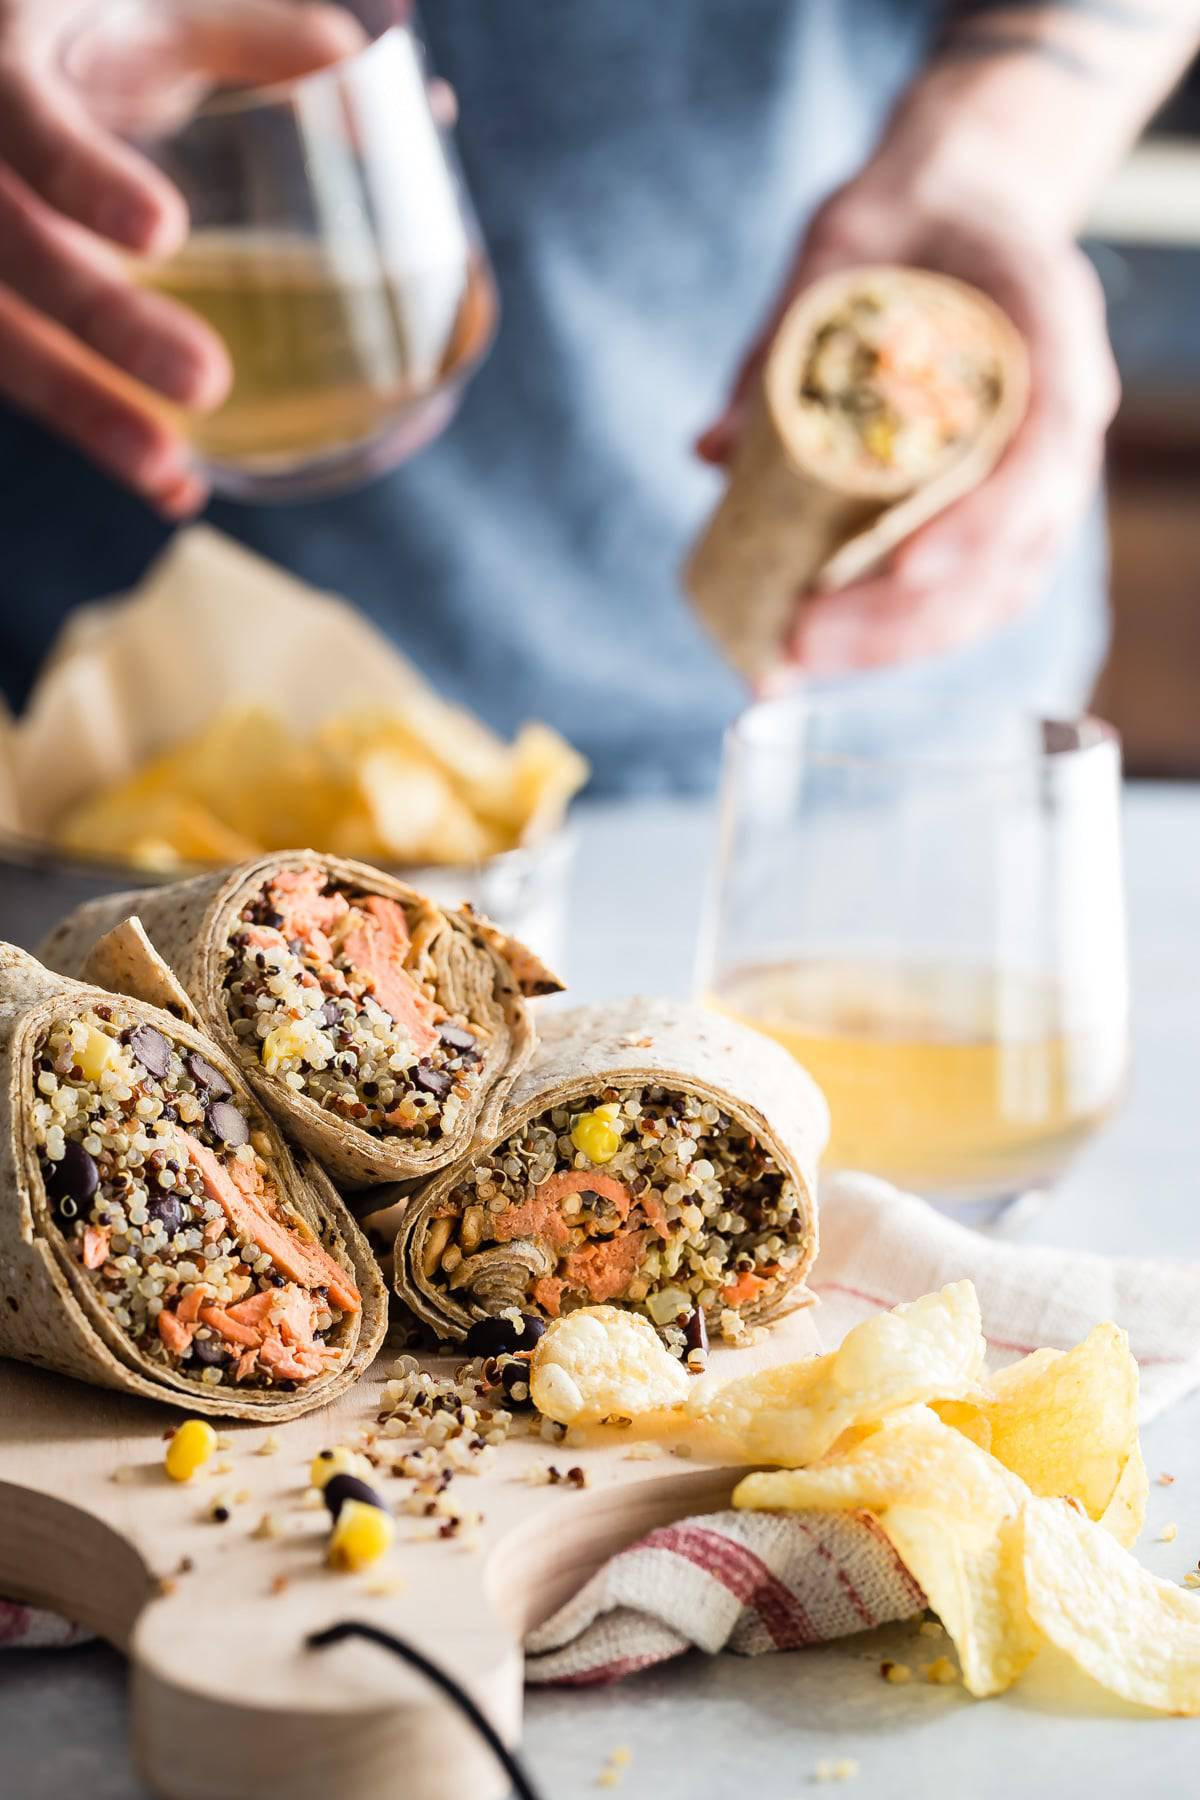 Easy to make salmon wraps are great for a picnic lunch!